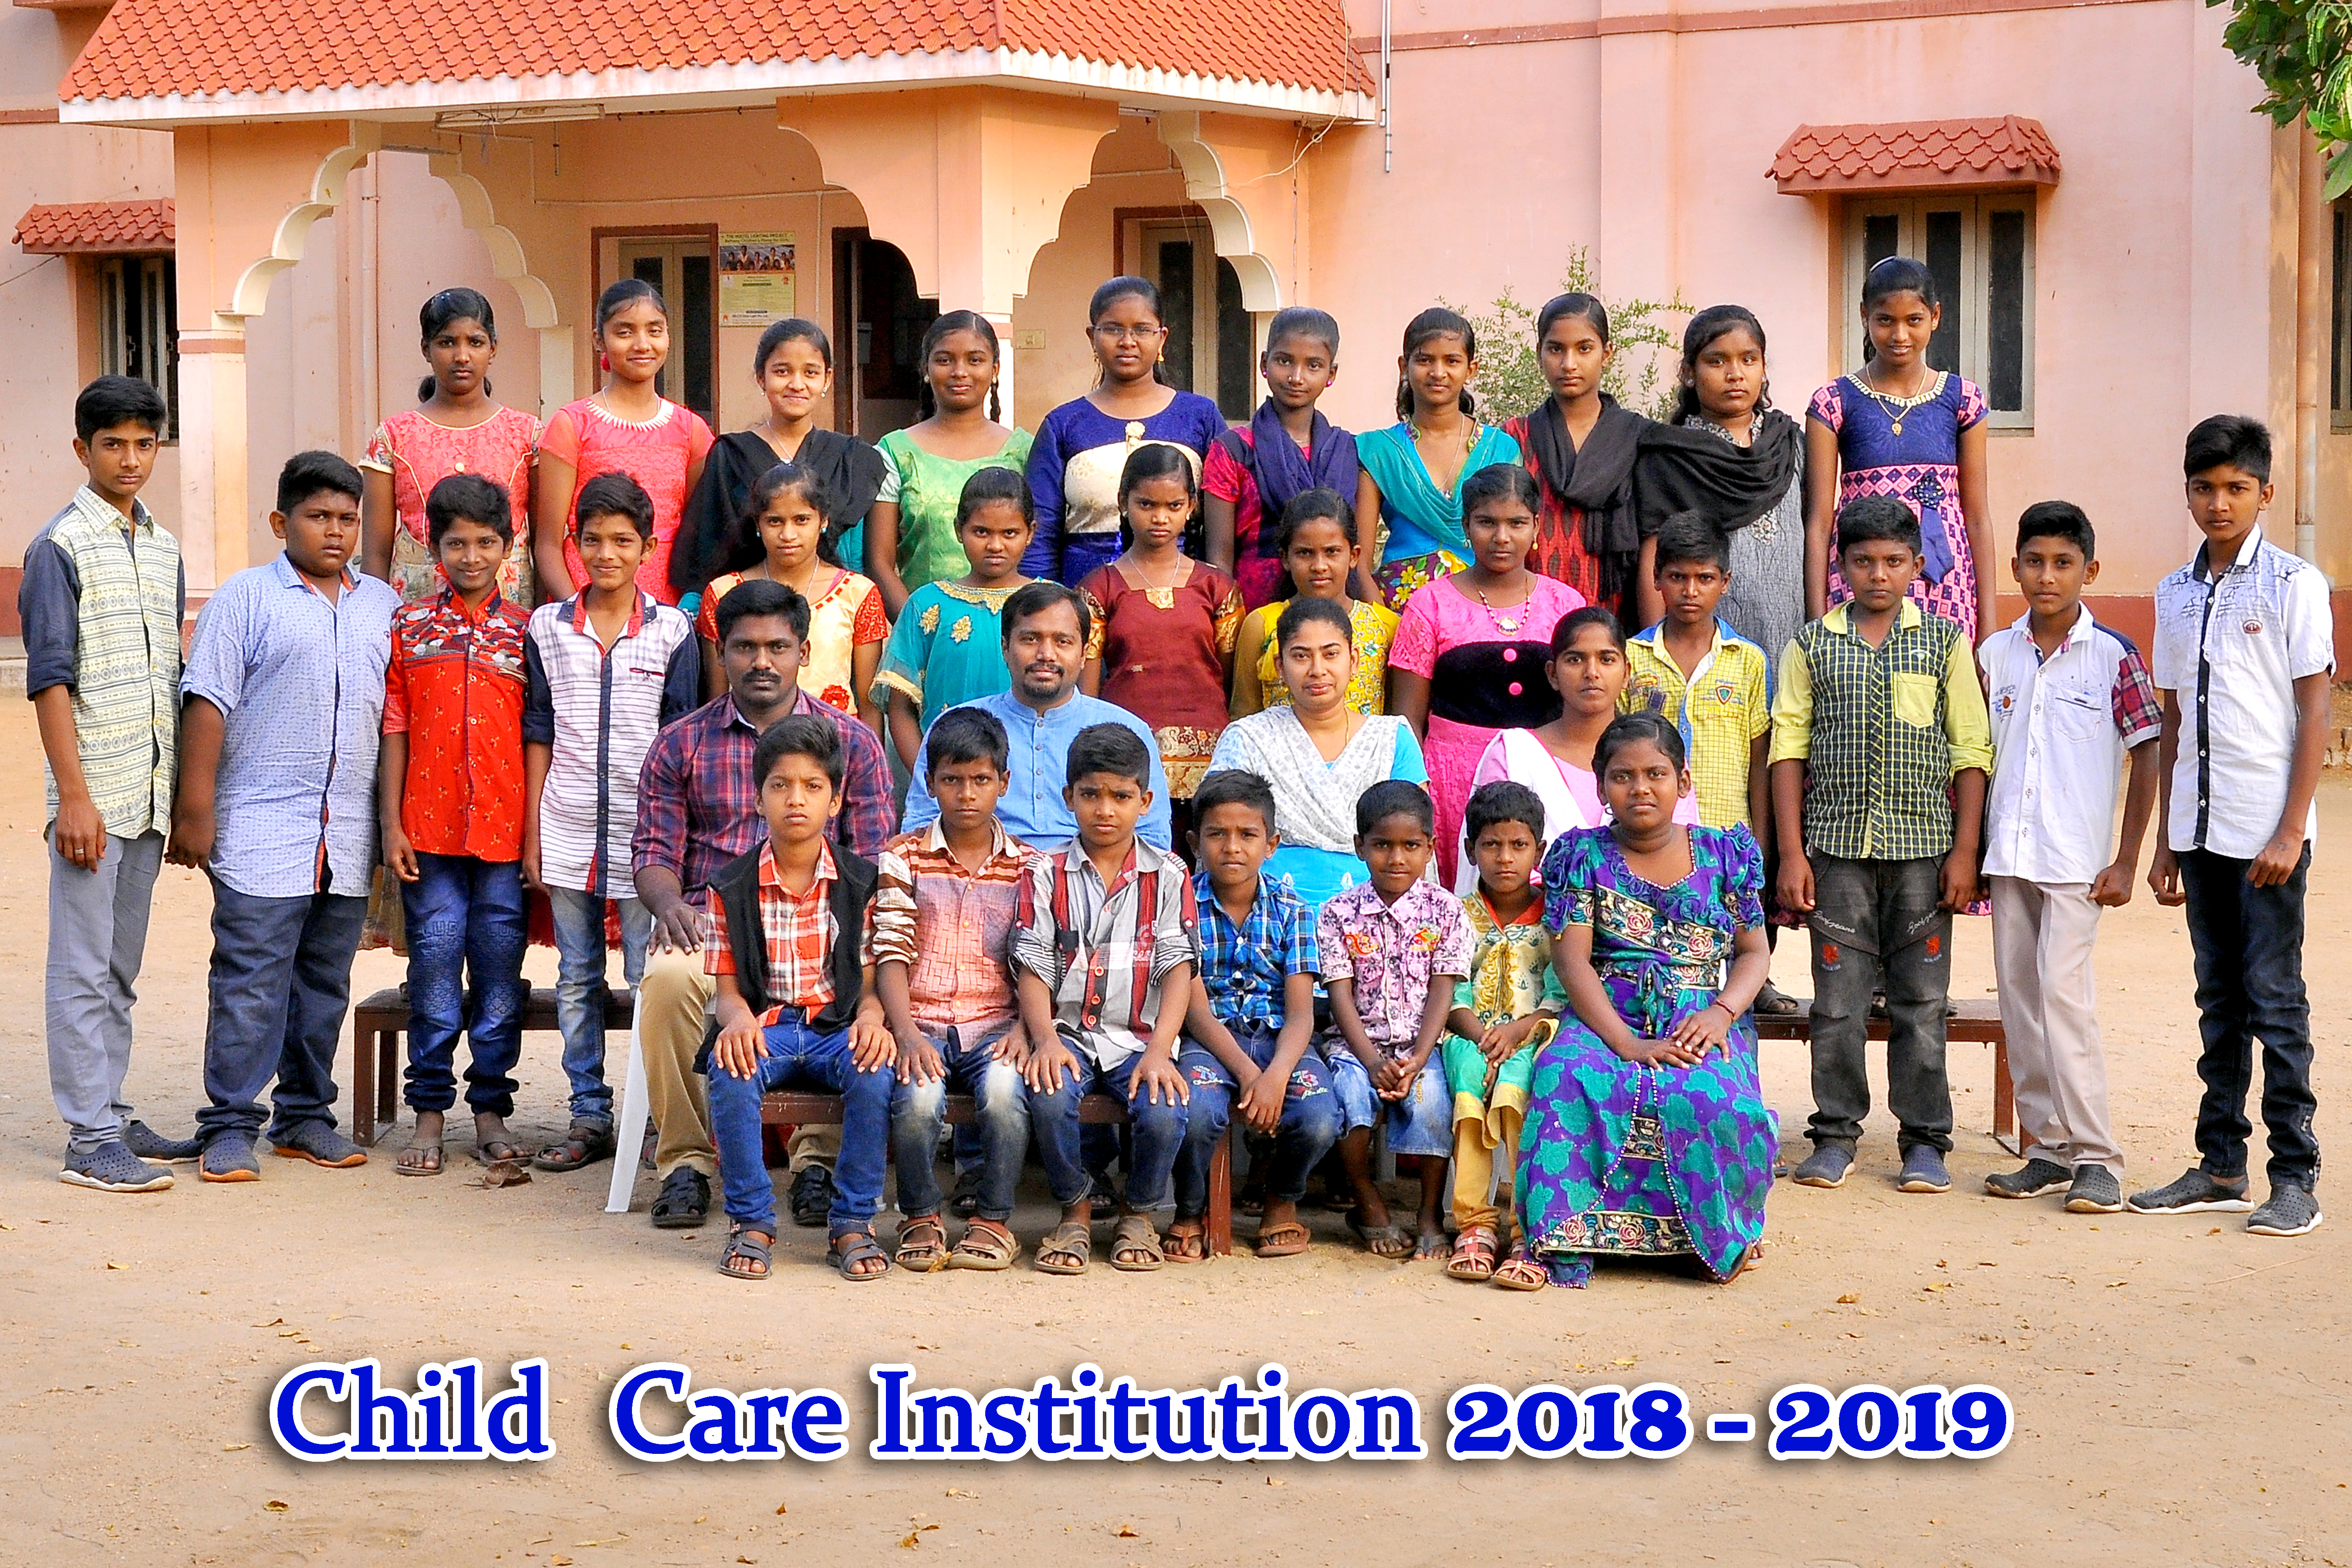 Educating and Empowering Vulnerable Children placed in Child Care Institution & After Care